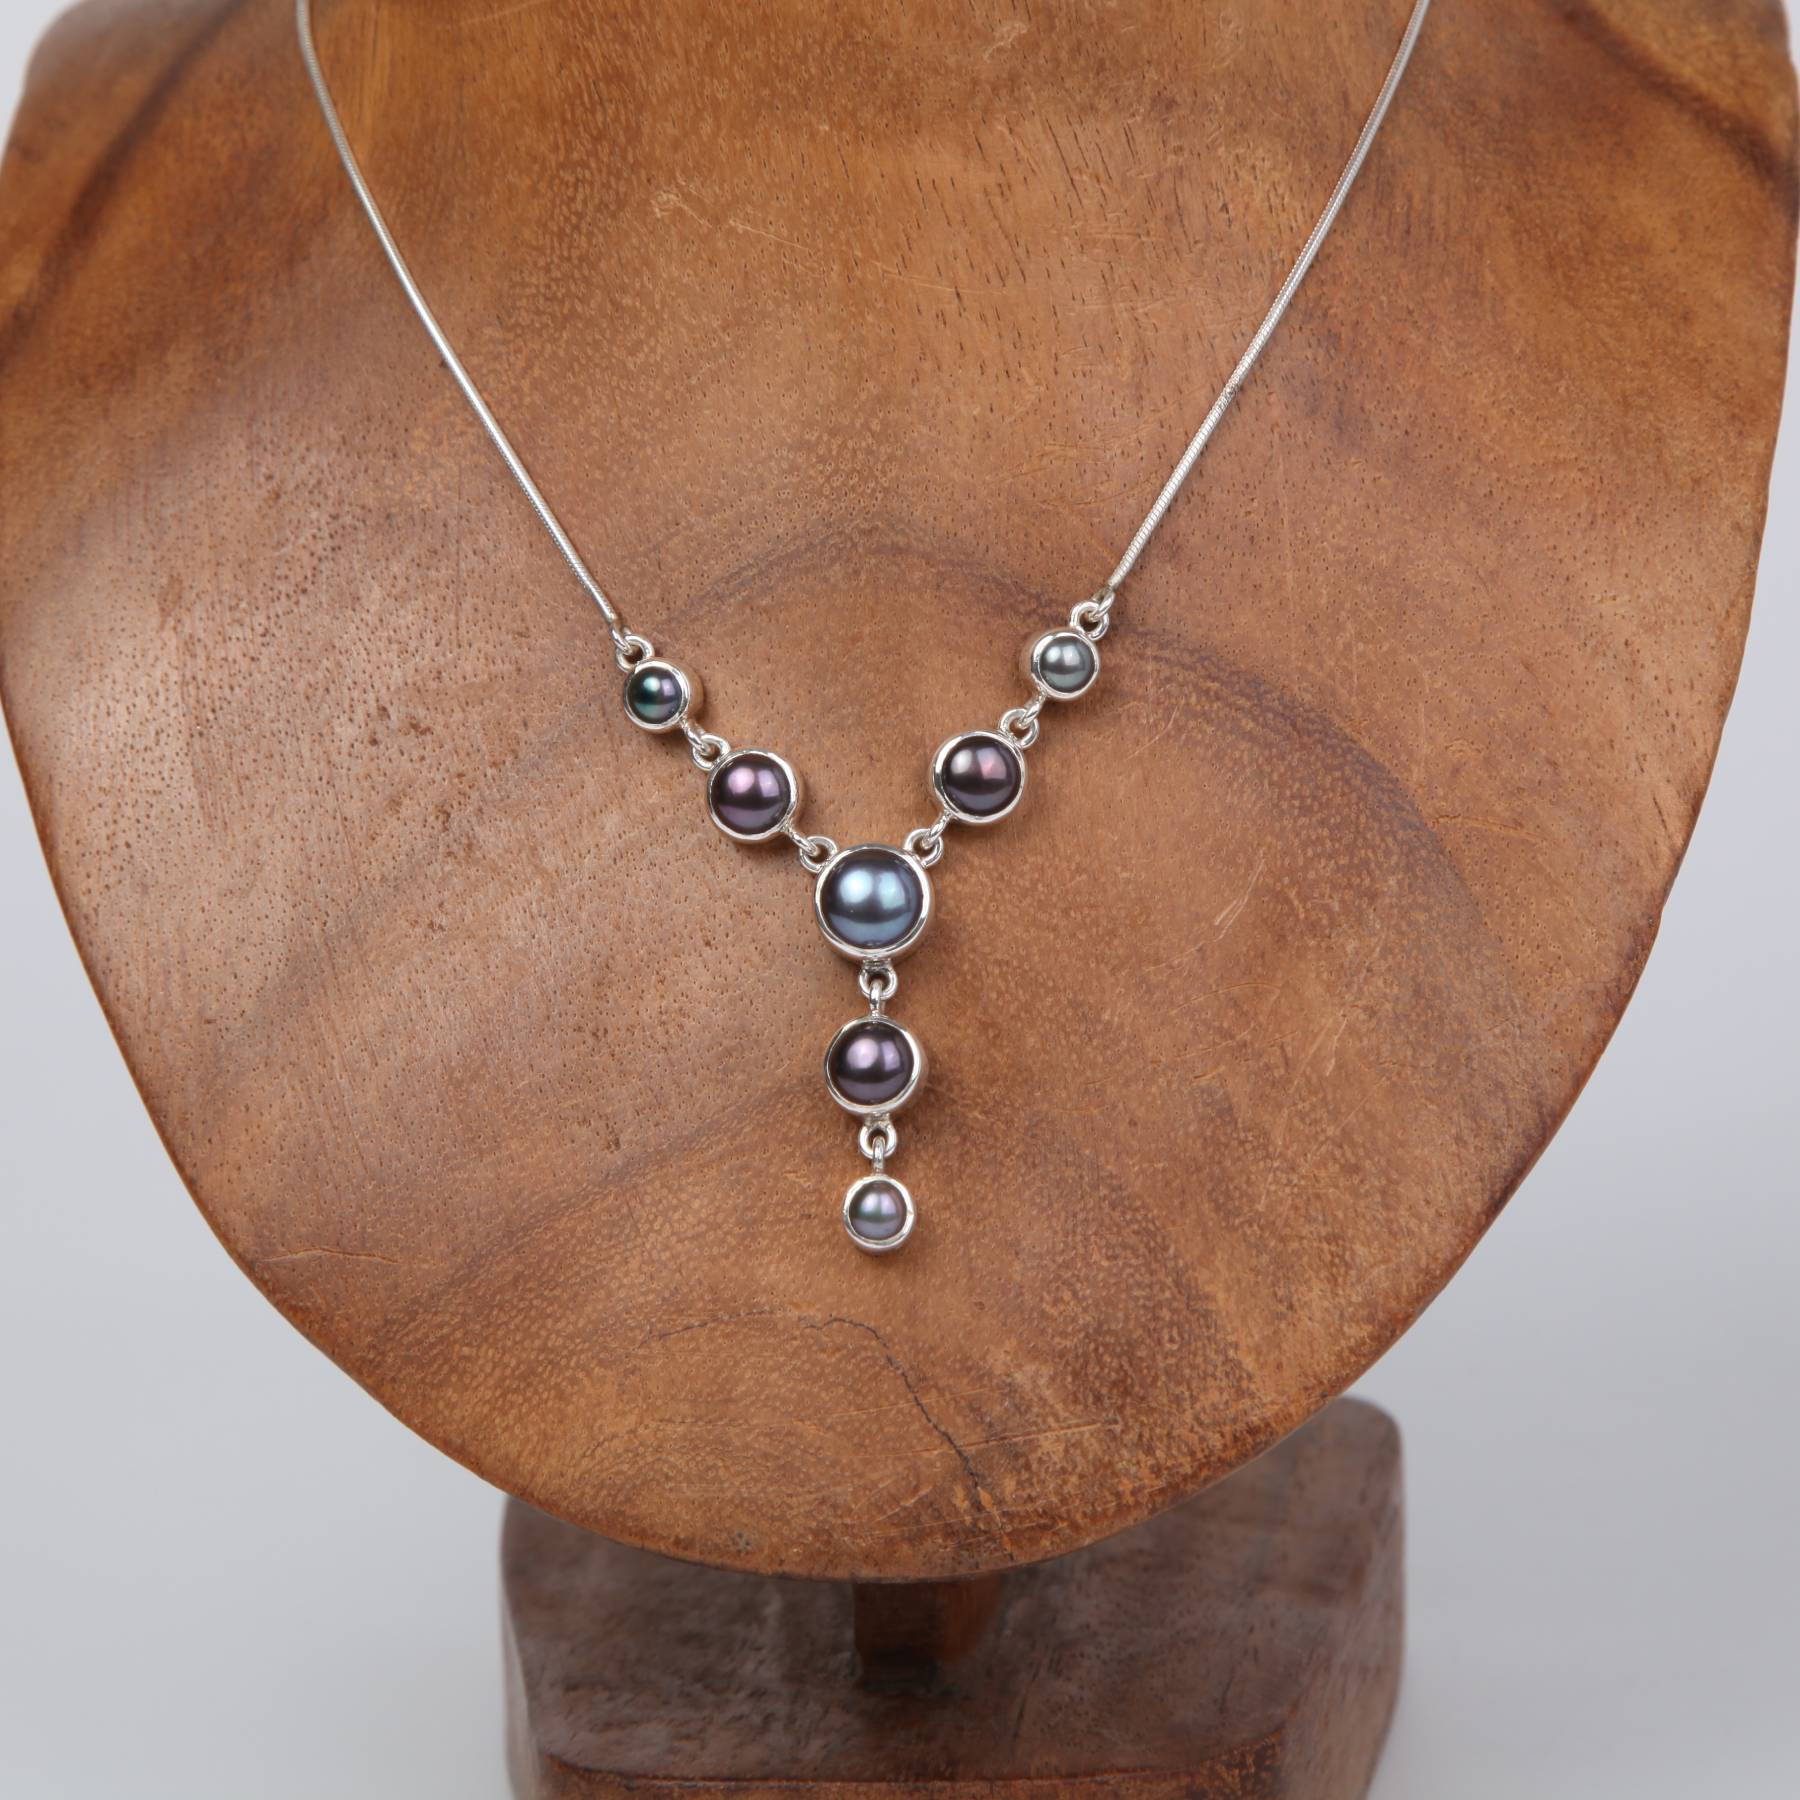 Dark Drop Down Sterling silver Necklace with Fresh Water Pearls